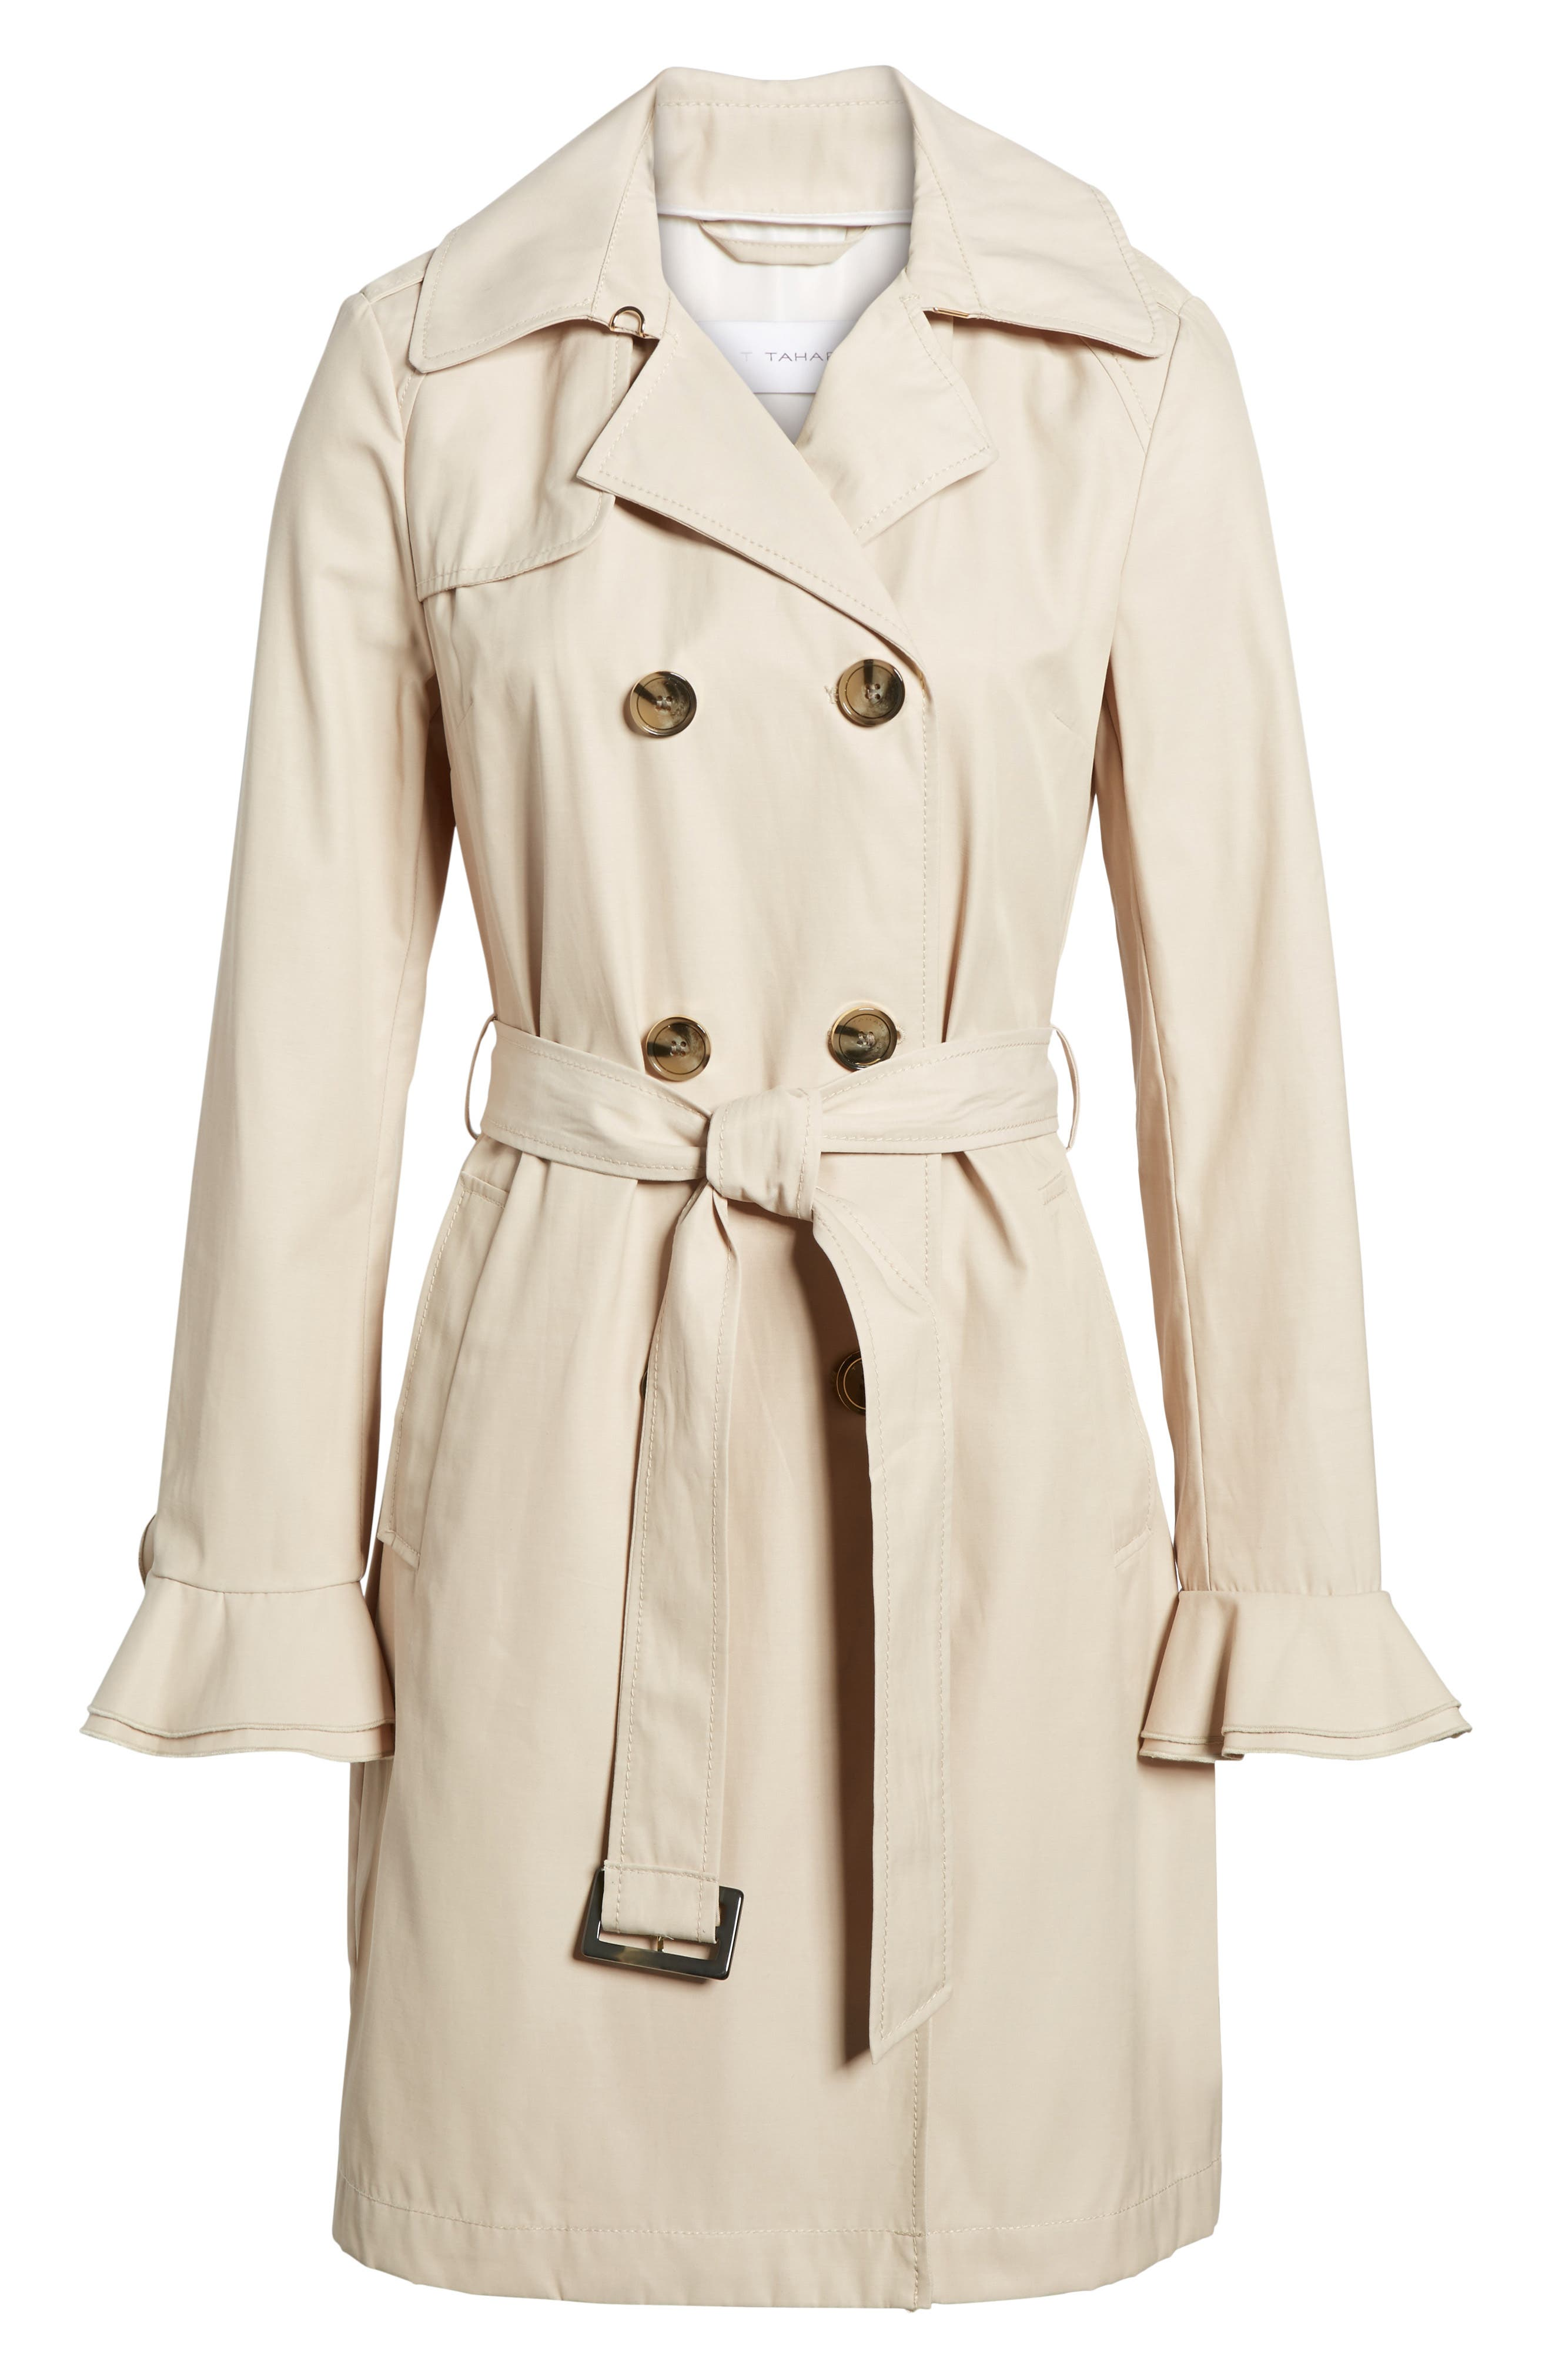 Stella Ruffle Sleeve Trench Coat,                             Alternate thumbnail 6, color,                             250